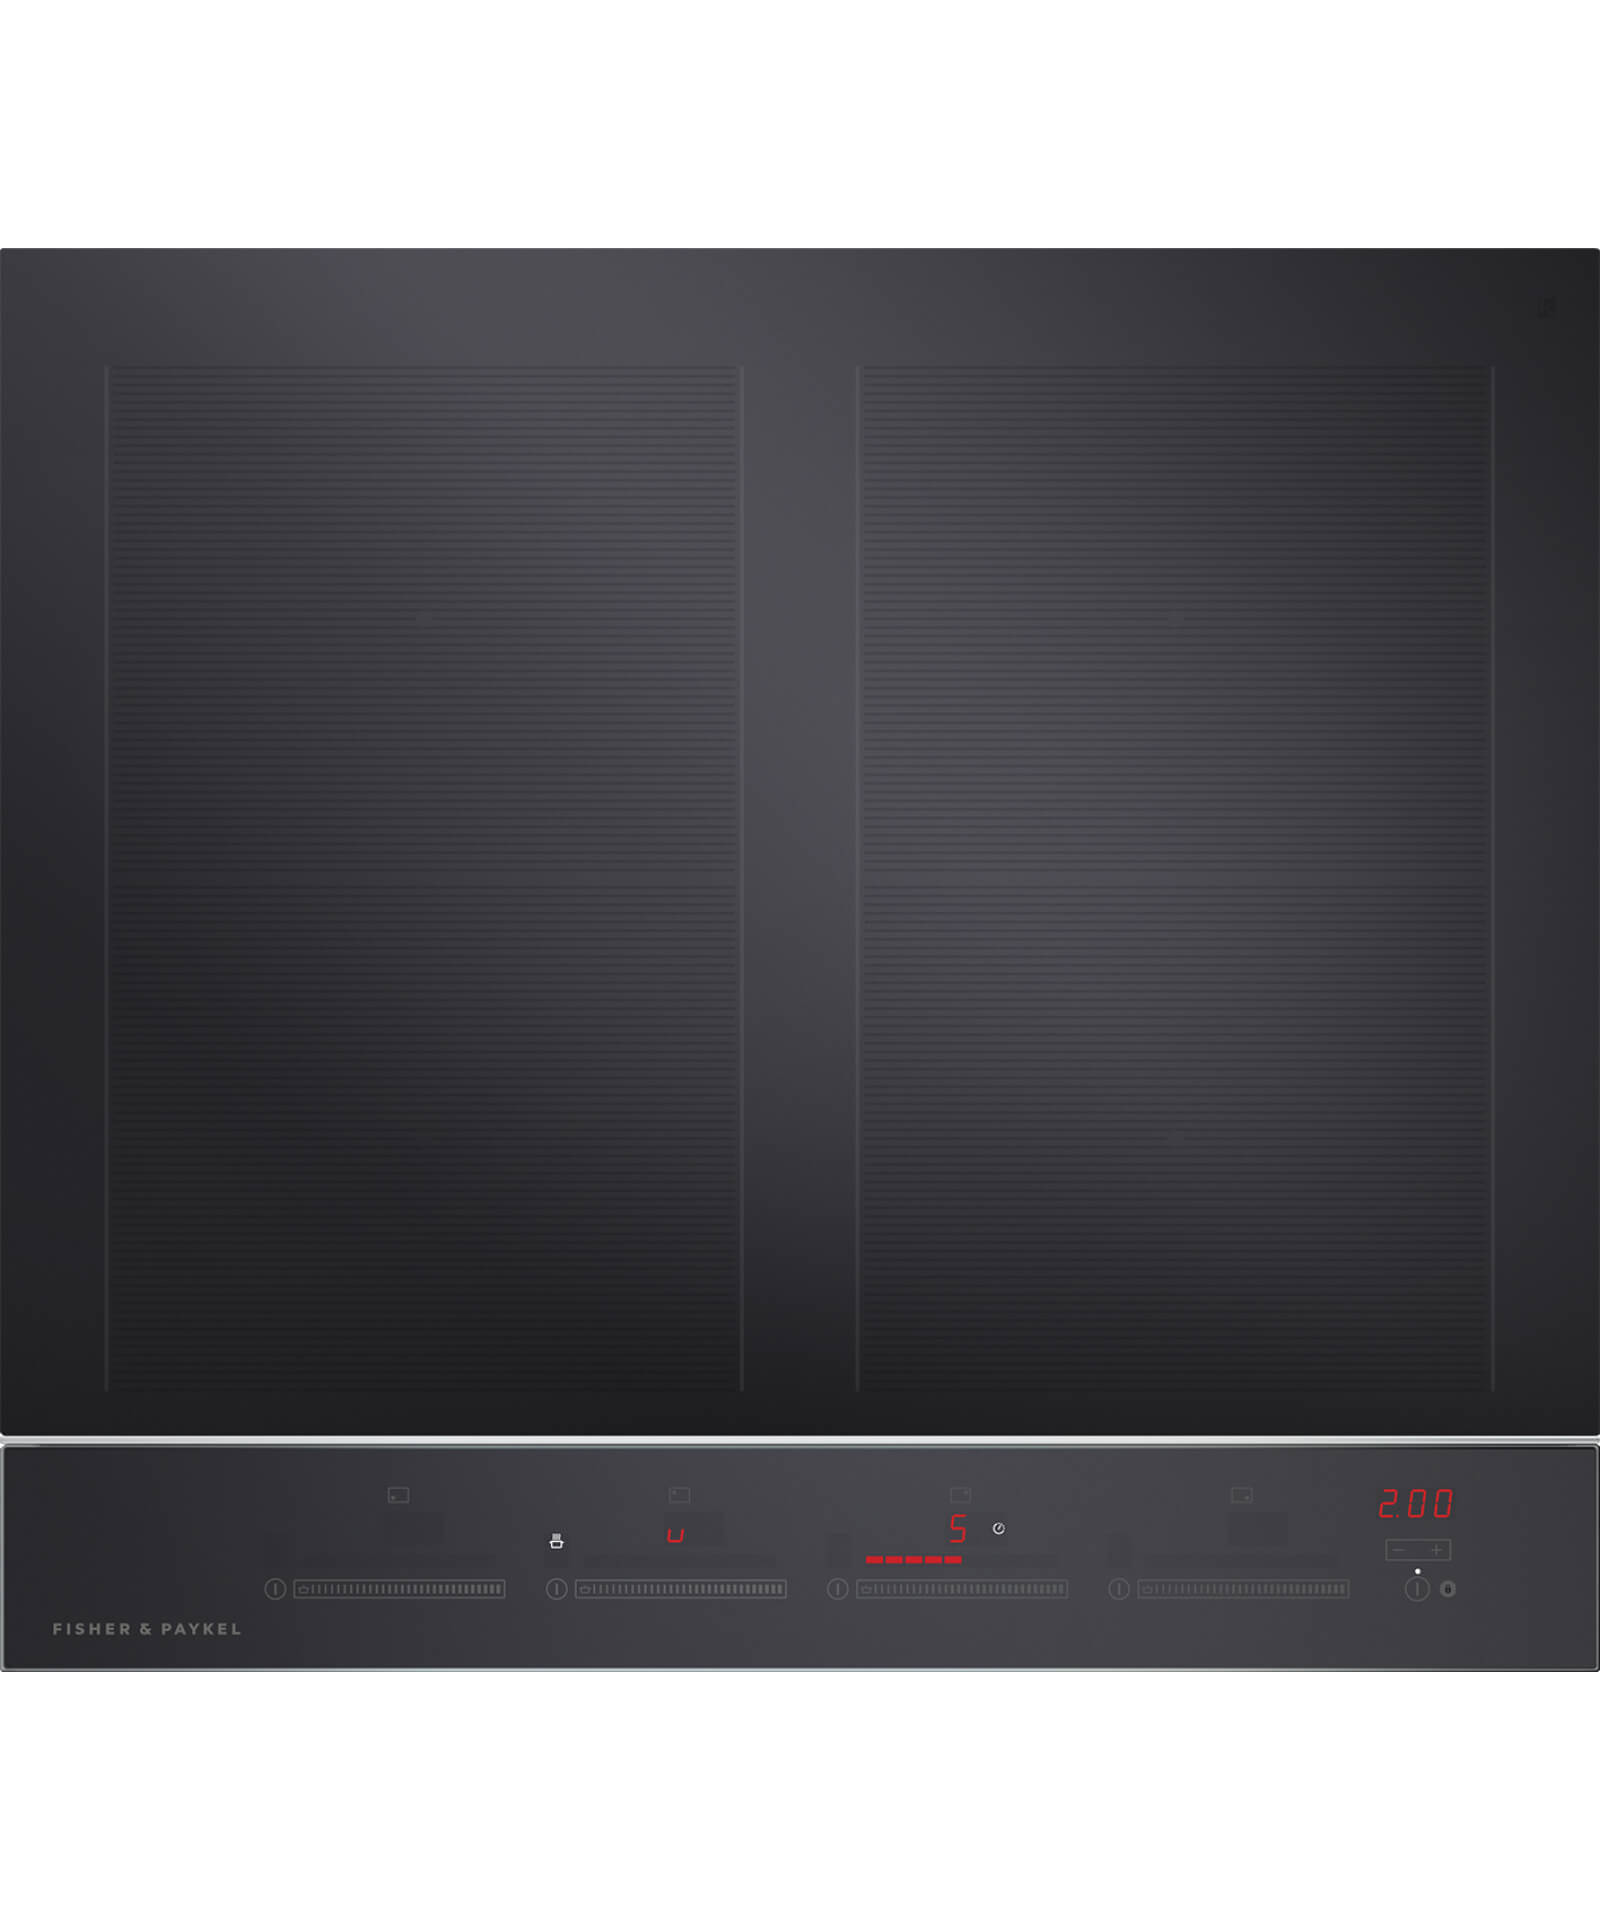 CI244DTB2N 24 4 Zone TouchampSlide Induction Cooktop